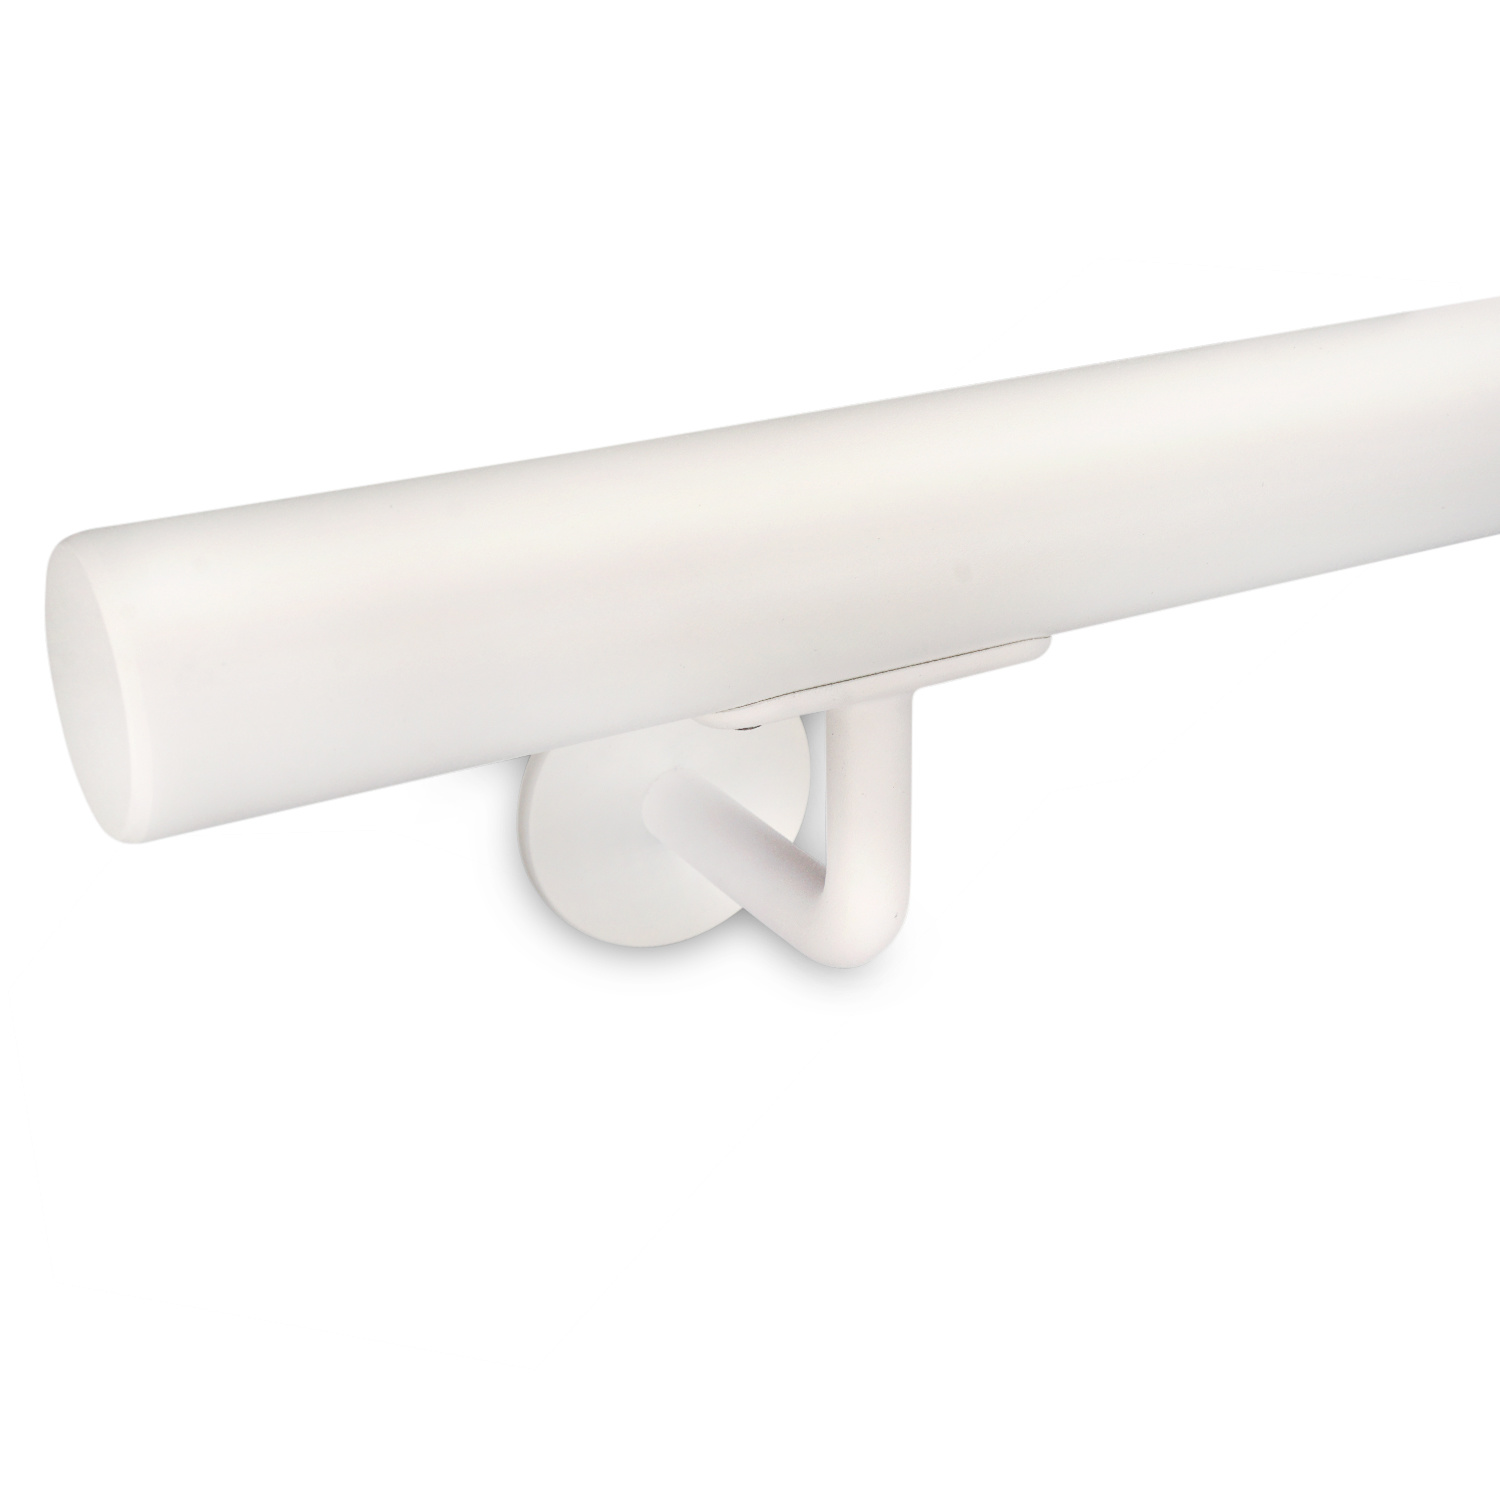 Trapleuning wit gecoat rond incl. dragers TYPE 3 - witte poedercoating RAL 9010